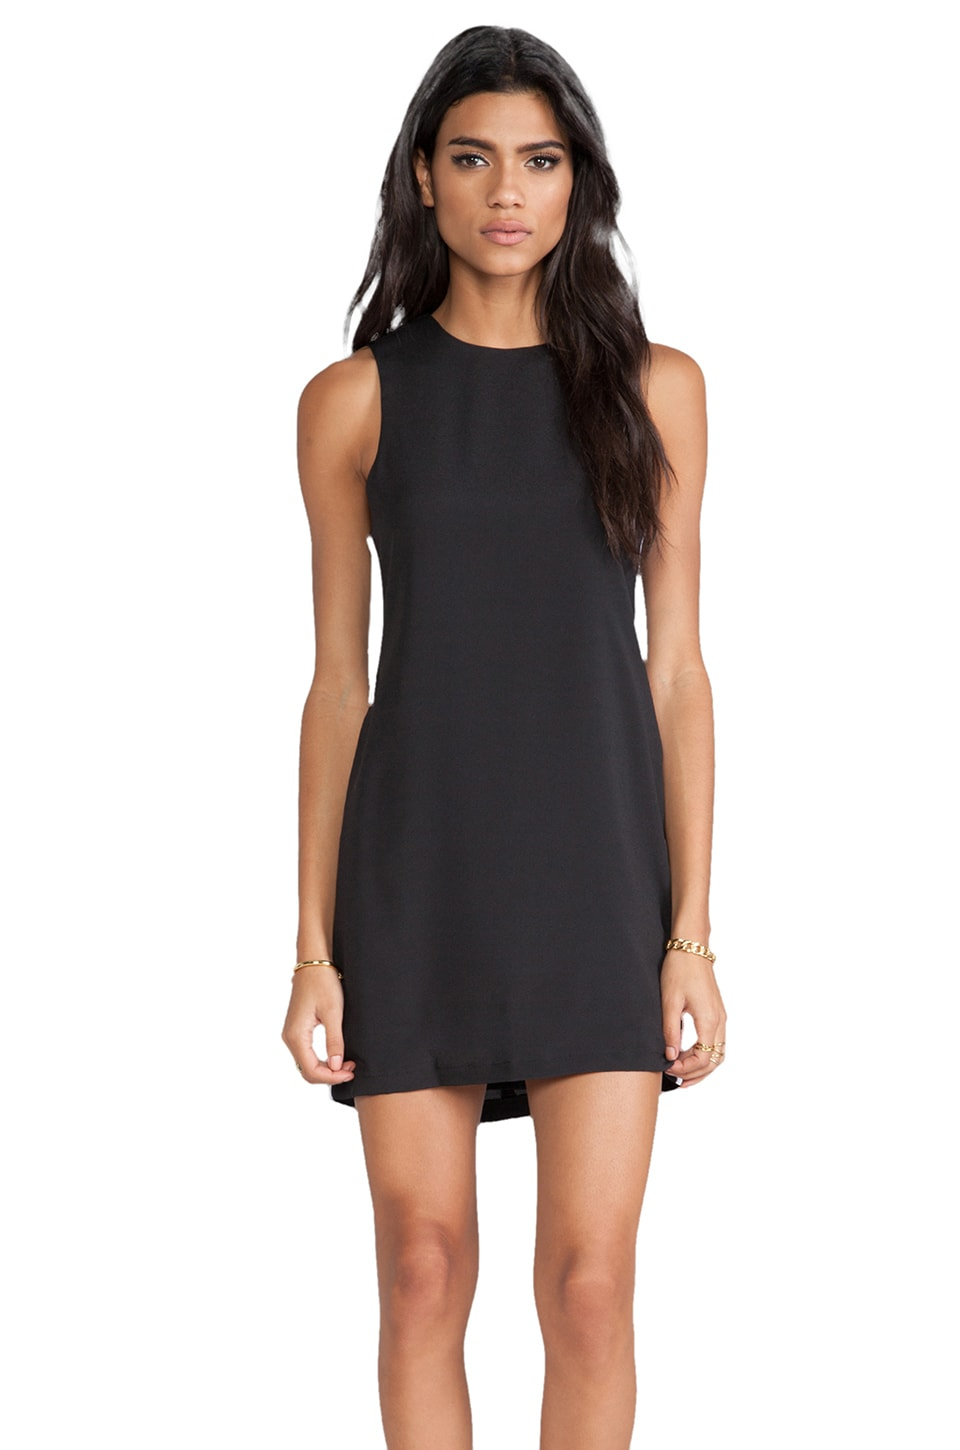 Naven EXCLUSIVE Twiggy Dress in Black/White